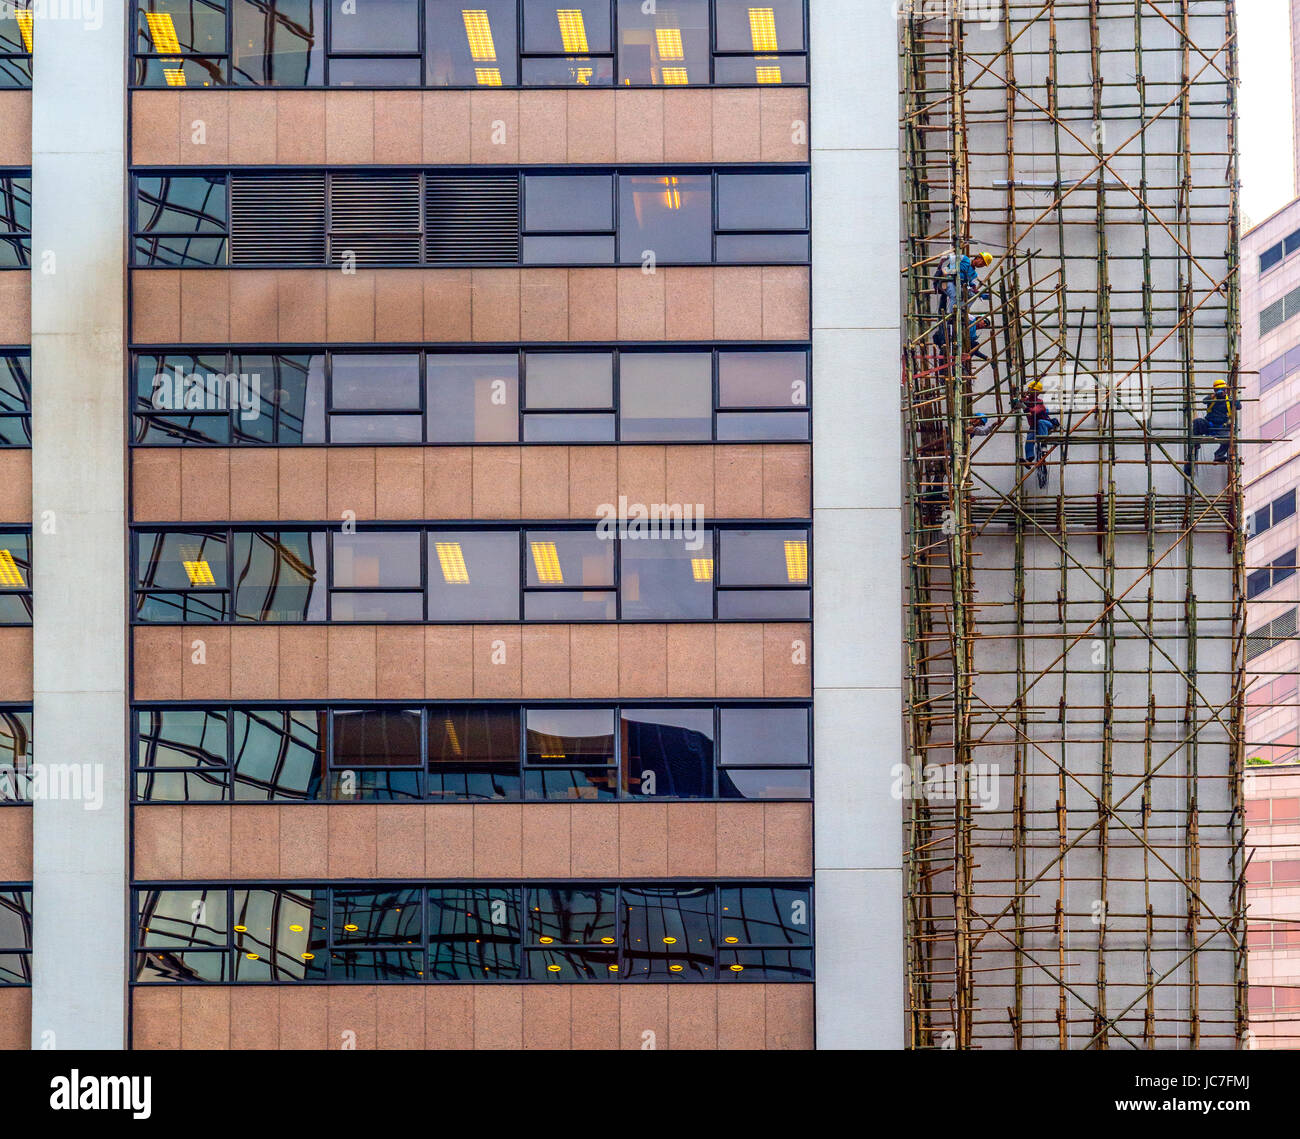 Bamboo Scaffolding and Workmen on high-rise building, Central, Hong Kong - Stock Image